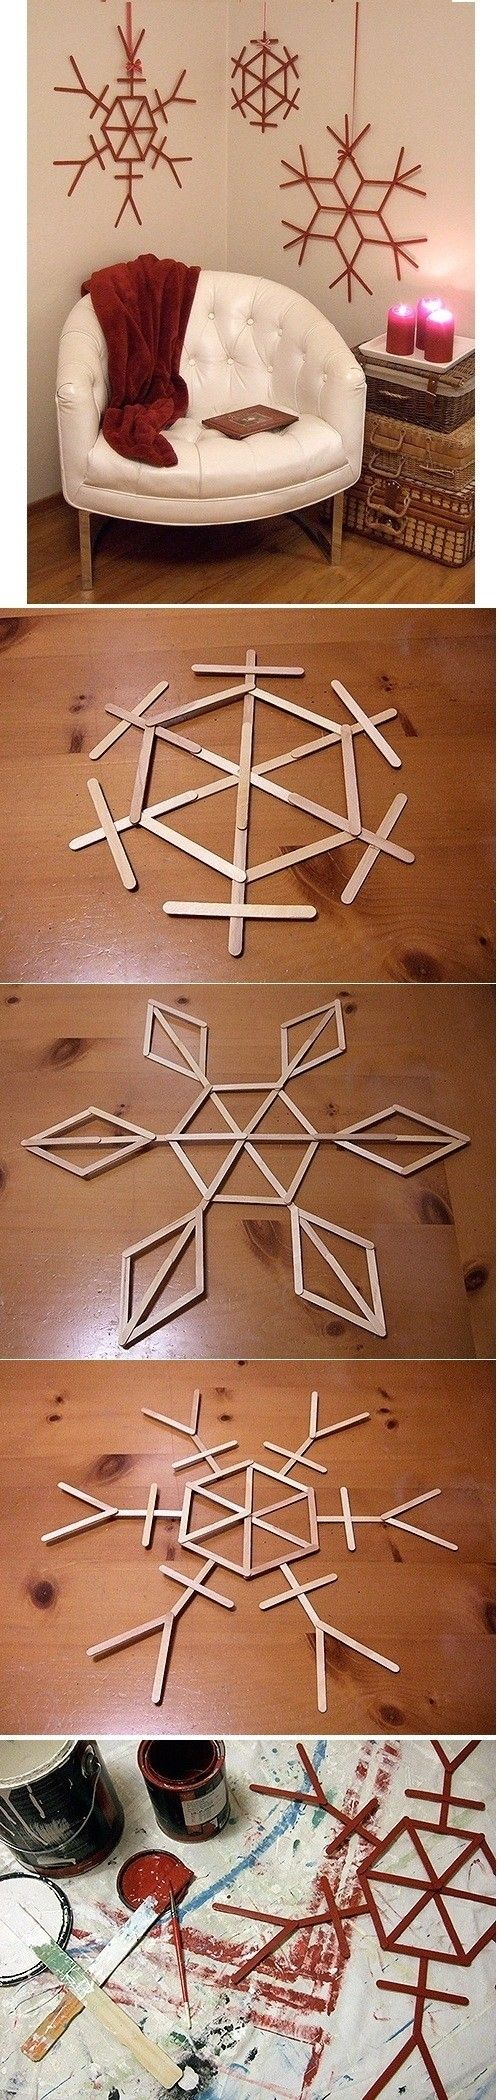 Popsicle-Stick Snowflakes